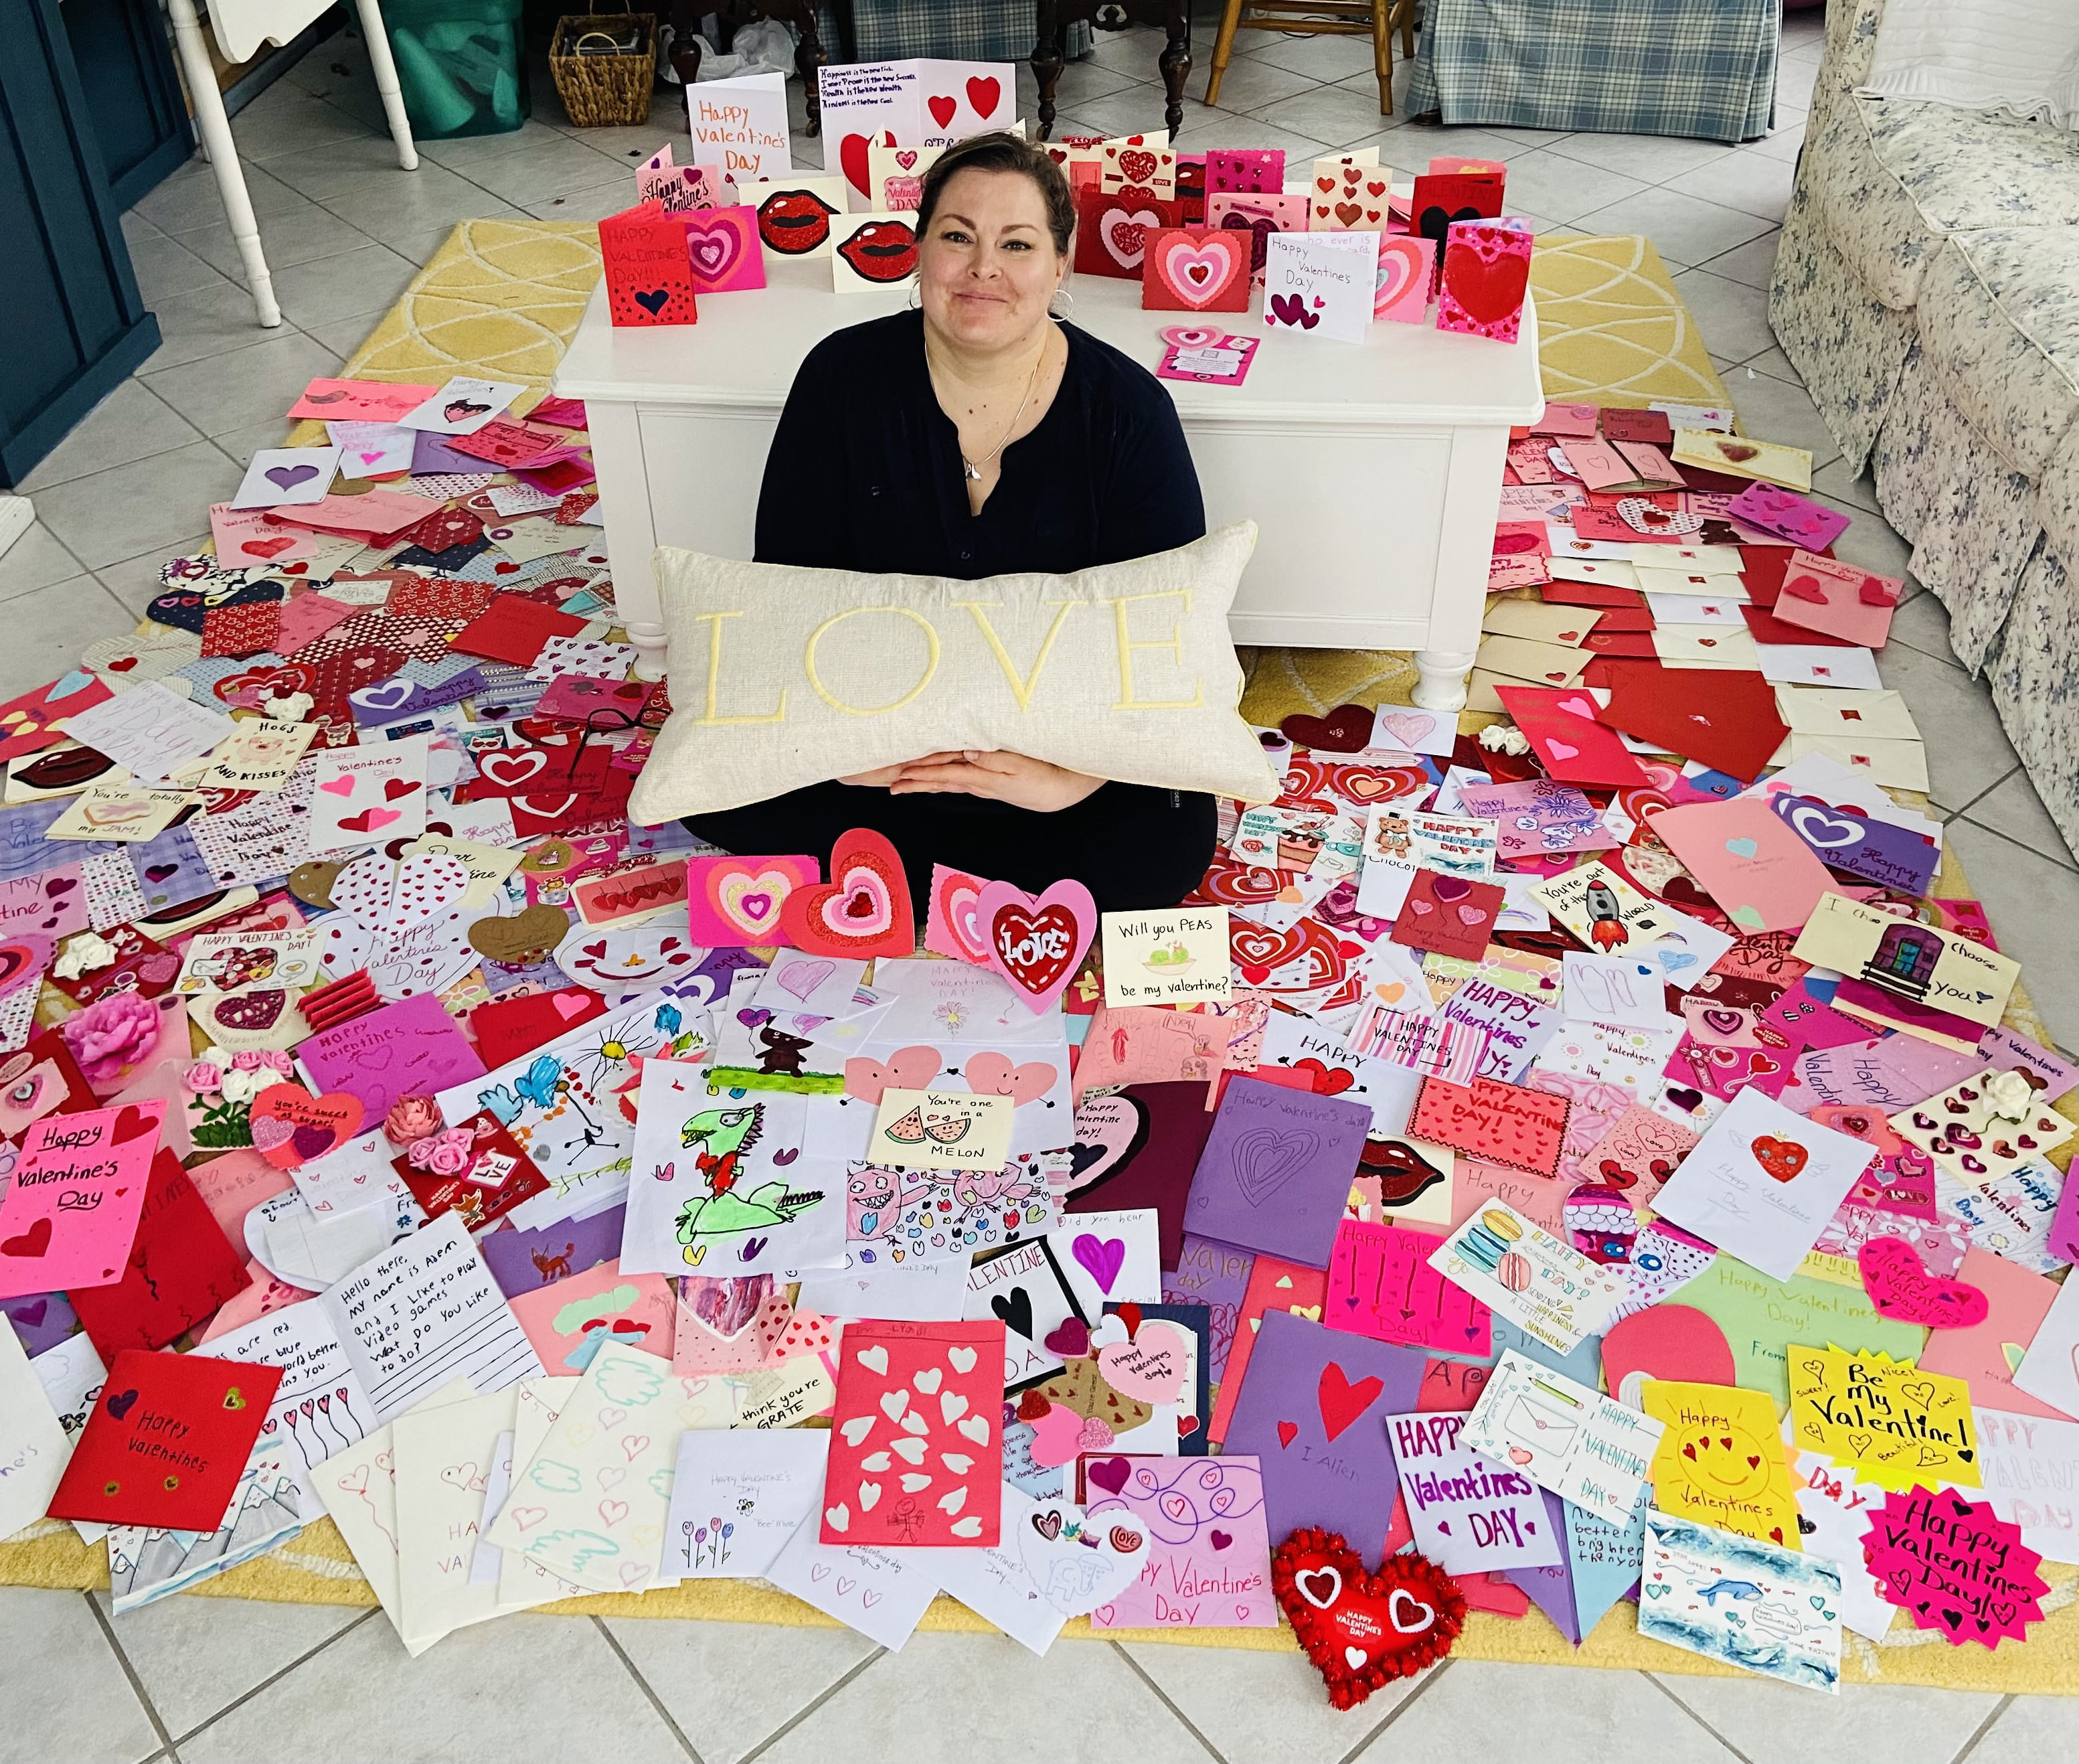 Amy Saccomano surrounded by hand-made Valentine's Day cards